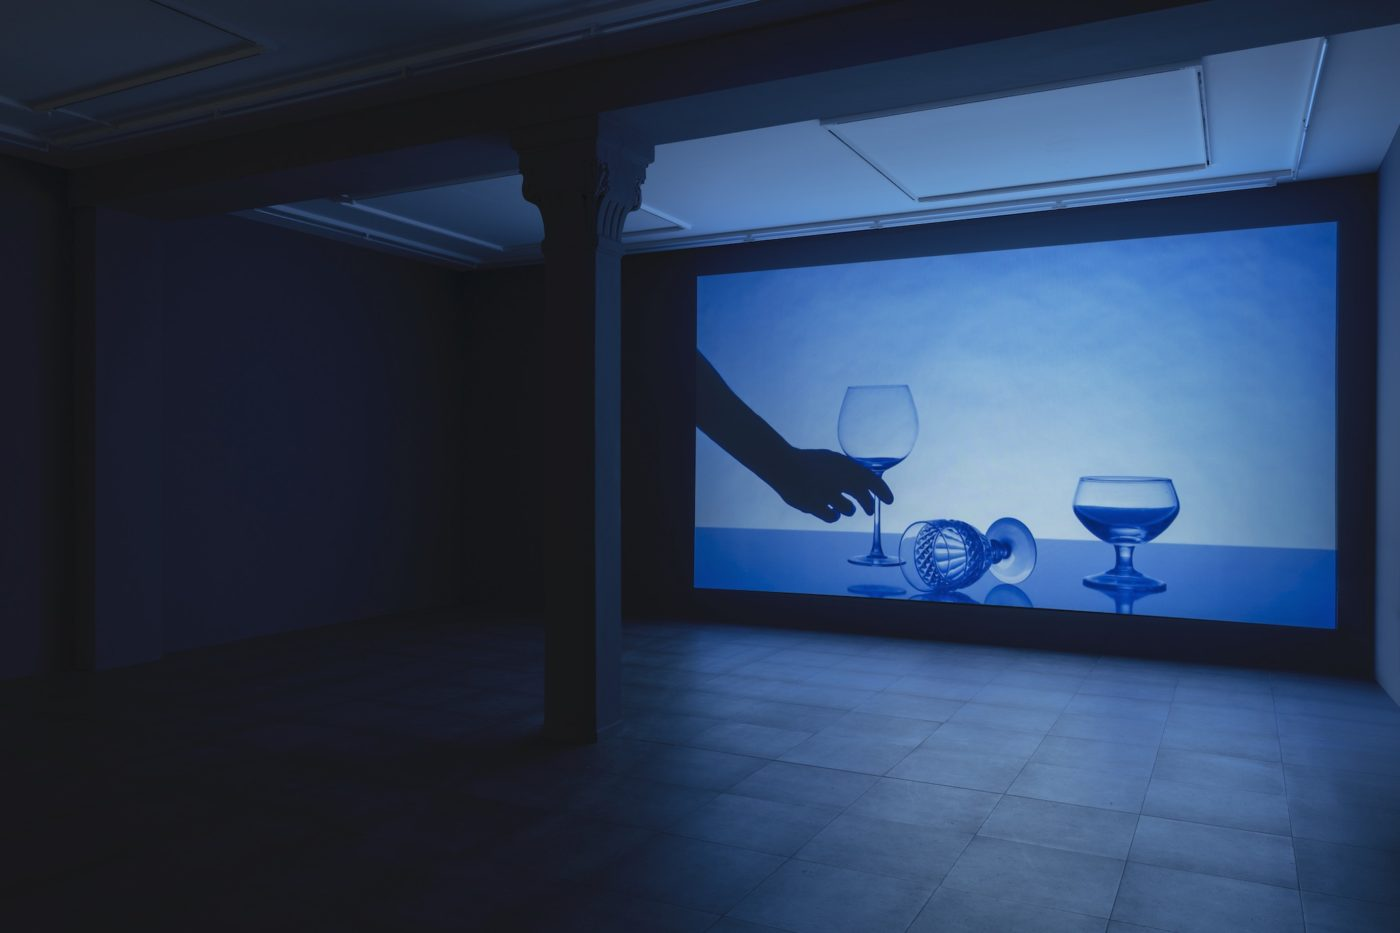 Anna Franceschini, Did you know you have a broken glass in the window?, 2020, Installation view at Vistamarestudio, Milano